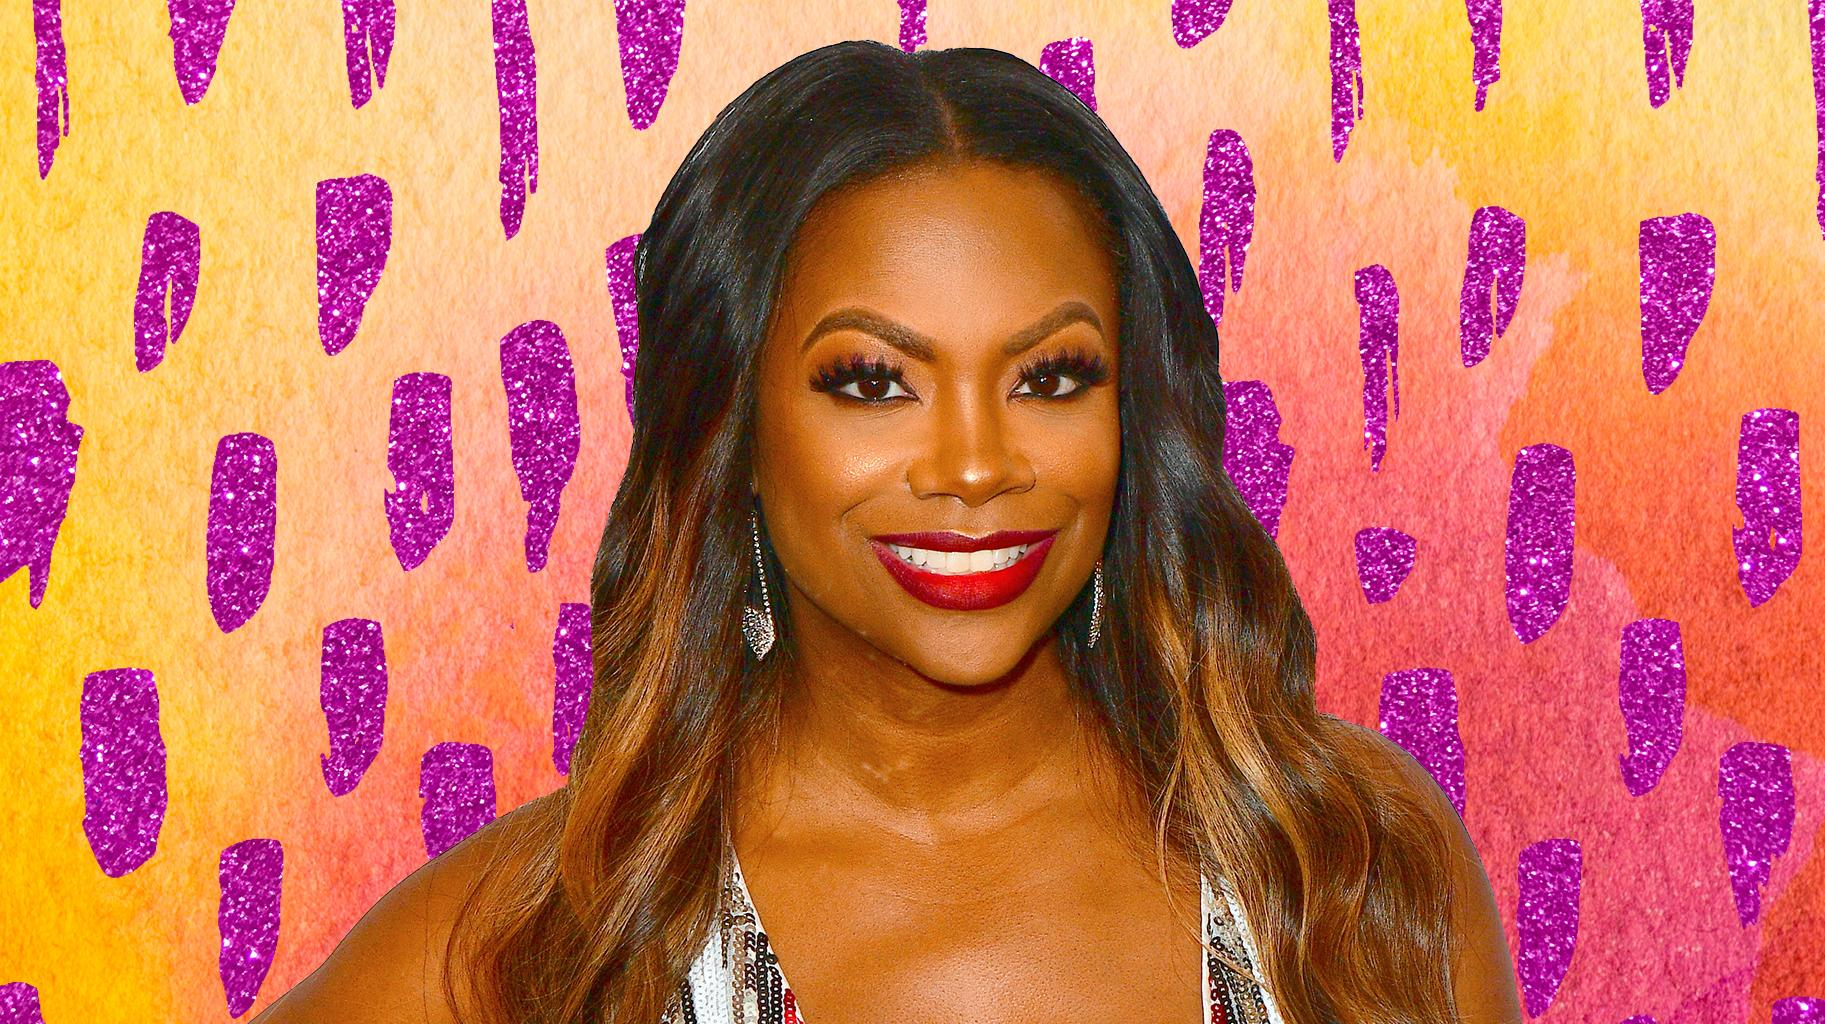 Kandi Burruss Receives Backlash From Haters Following This IG Post